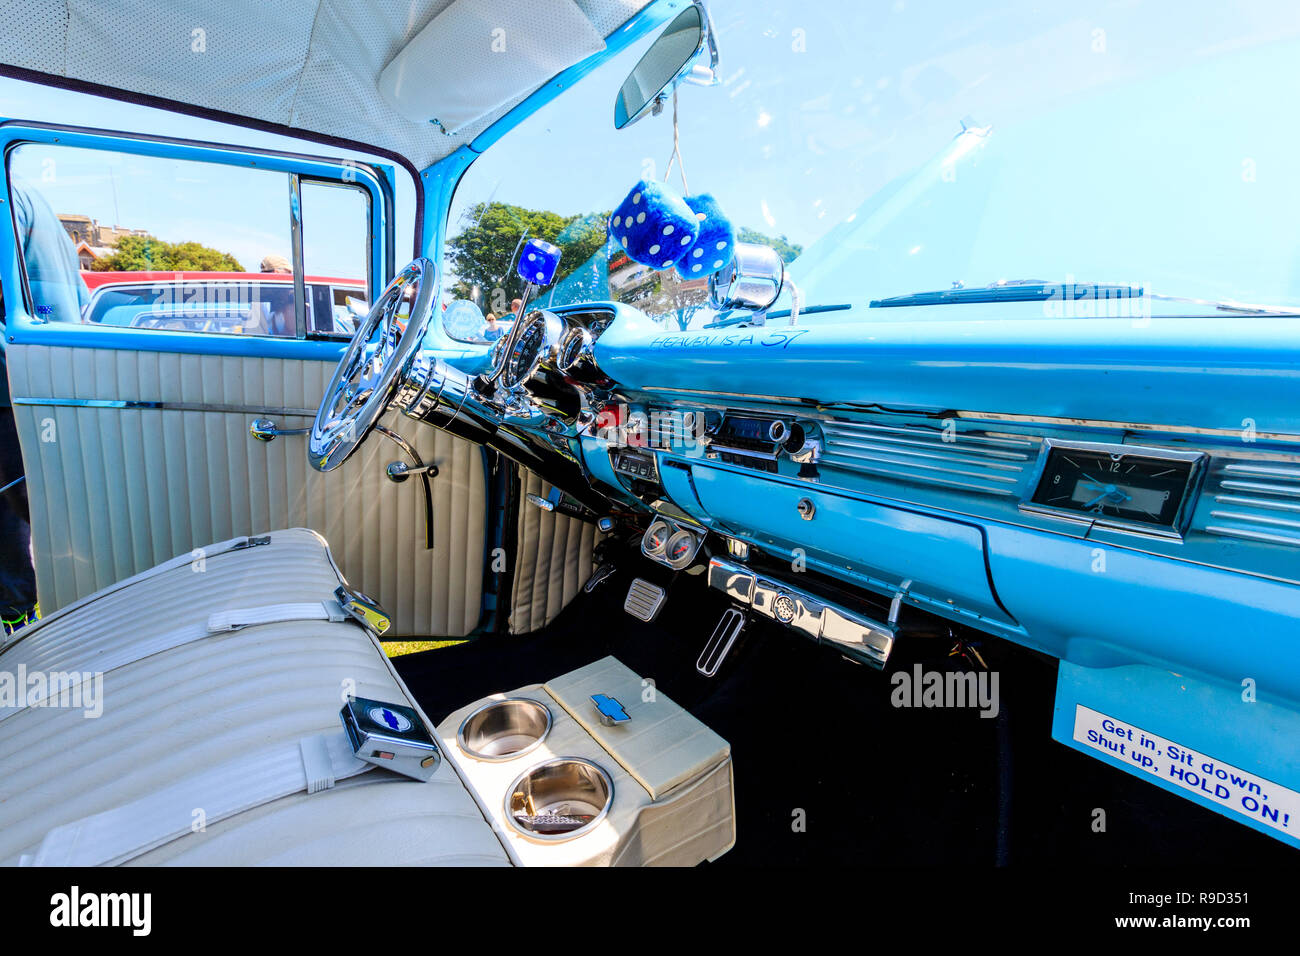 1957 Chevrolet Bel Air car. Interior by front passenger seat, fluffy dice hanging from mirror, light blue dashboard, sign, 'Heaven is a 57'. - Stock Image